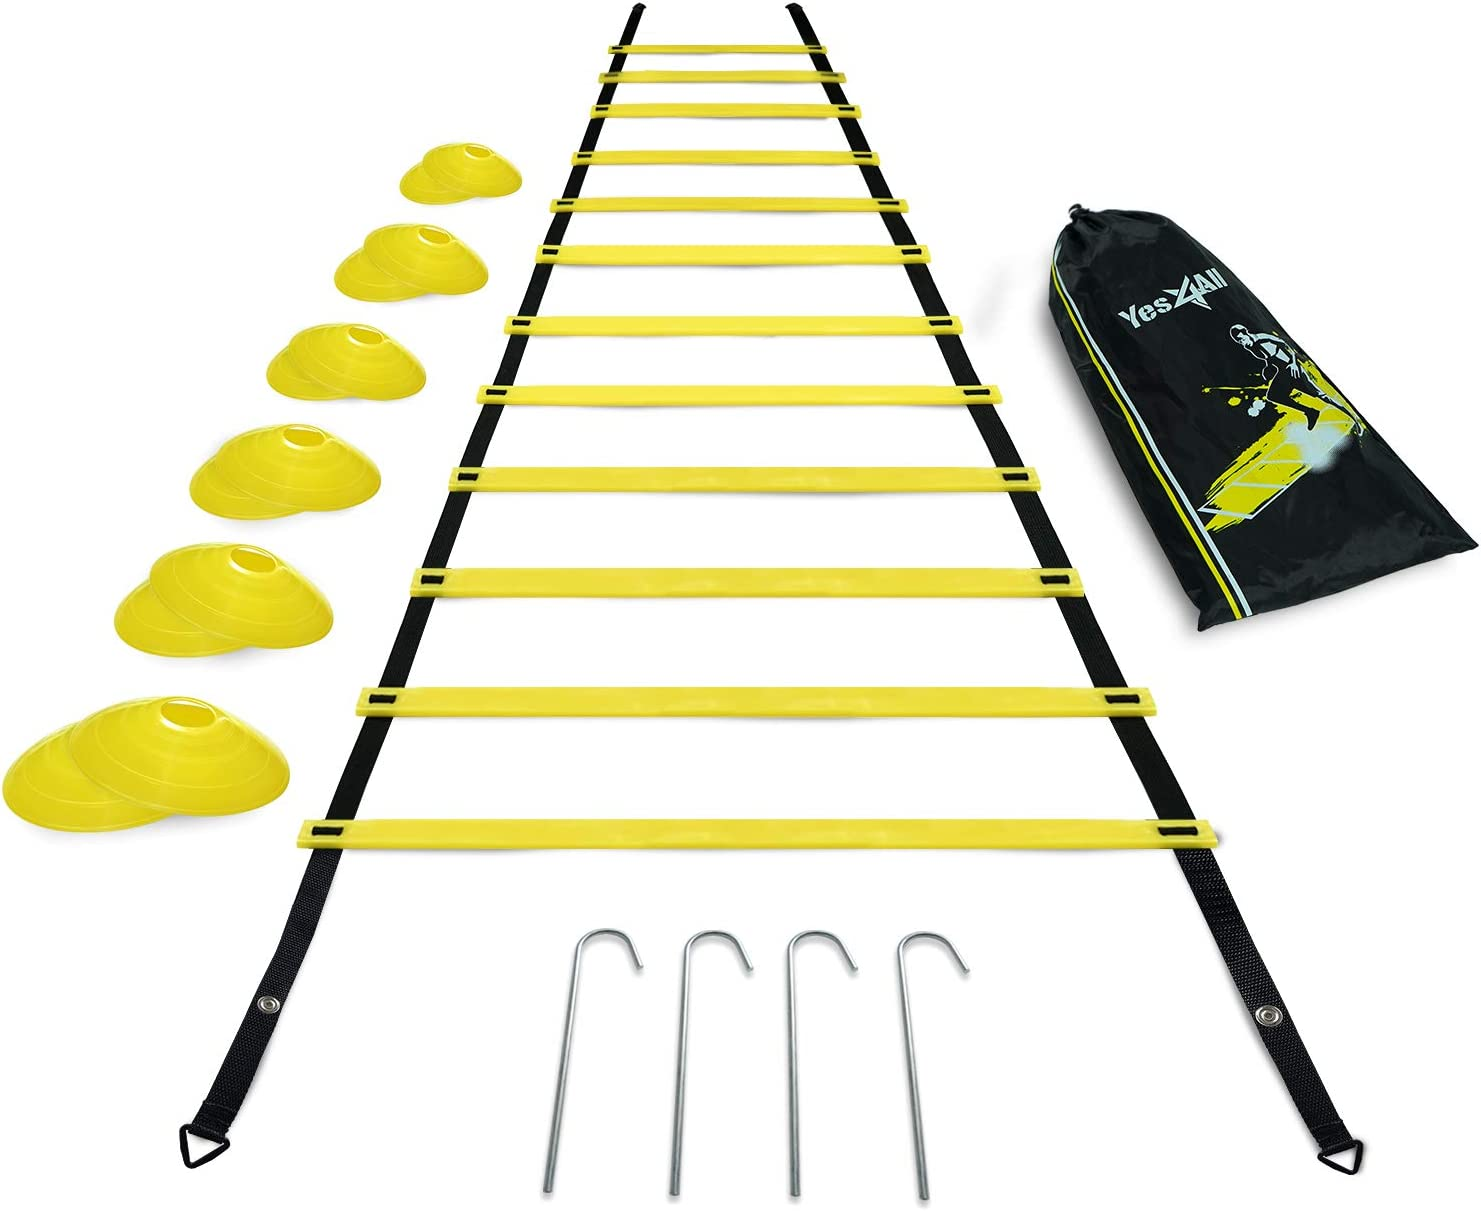 Yes4All Ultimate Combo Agility Set Training Ladder Ultra-Cheap Deals Max 88% OFF with